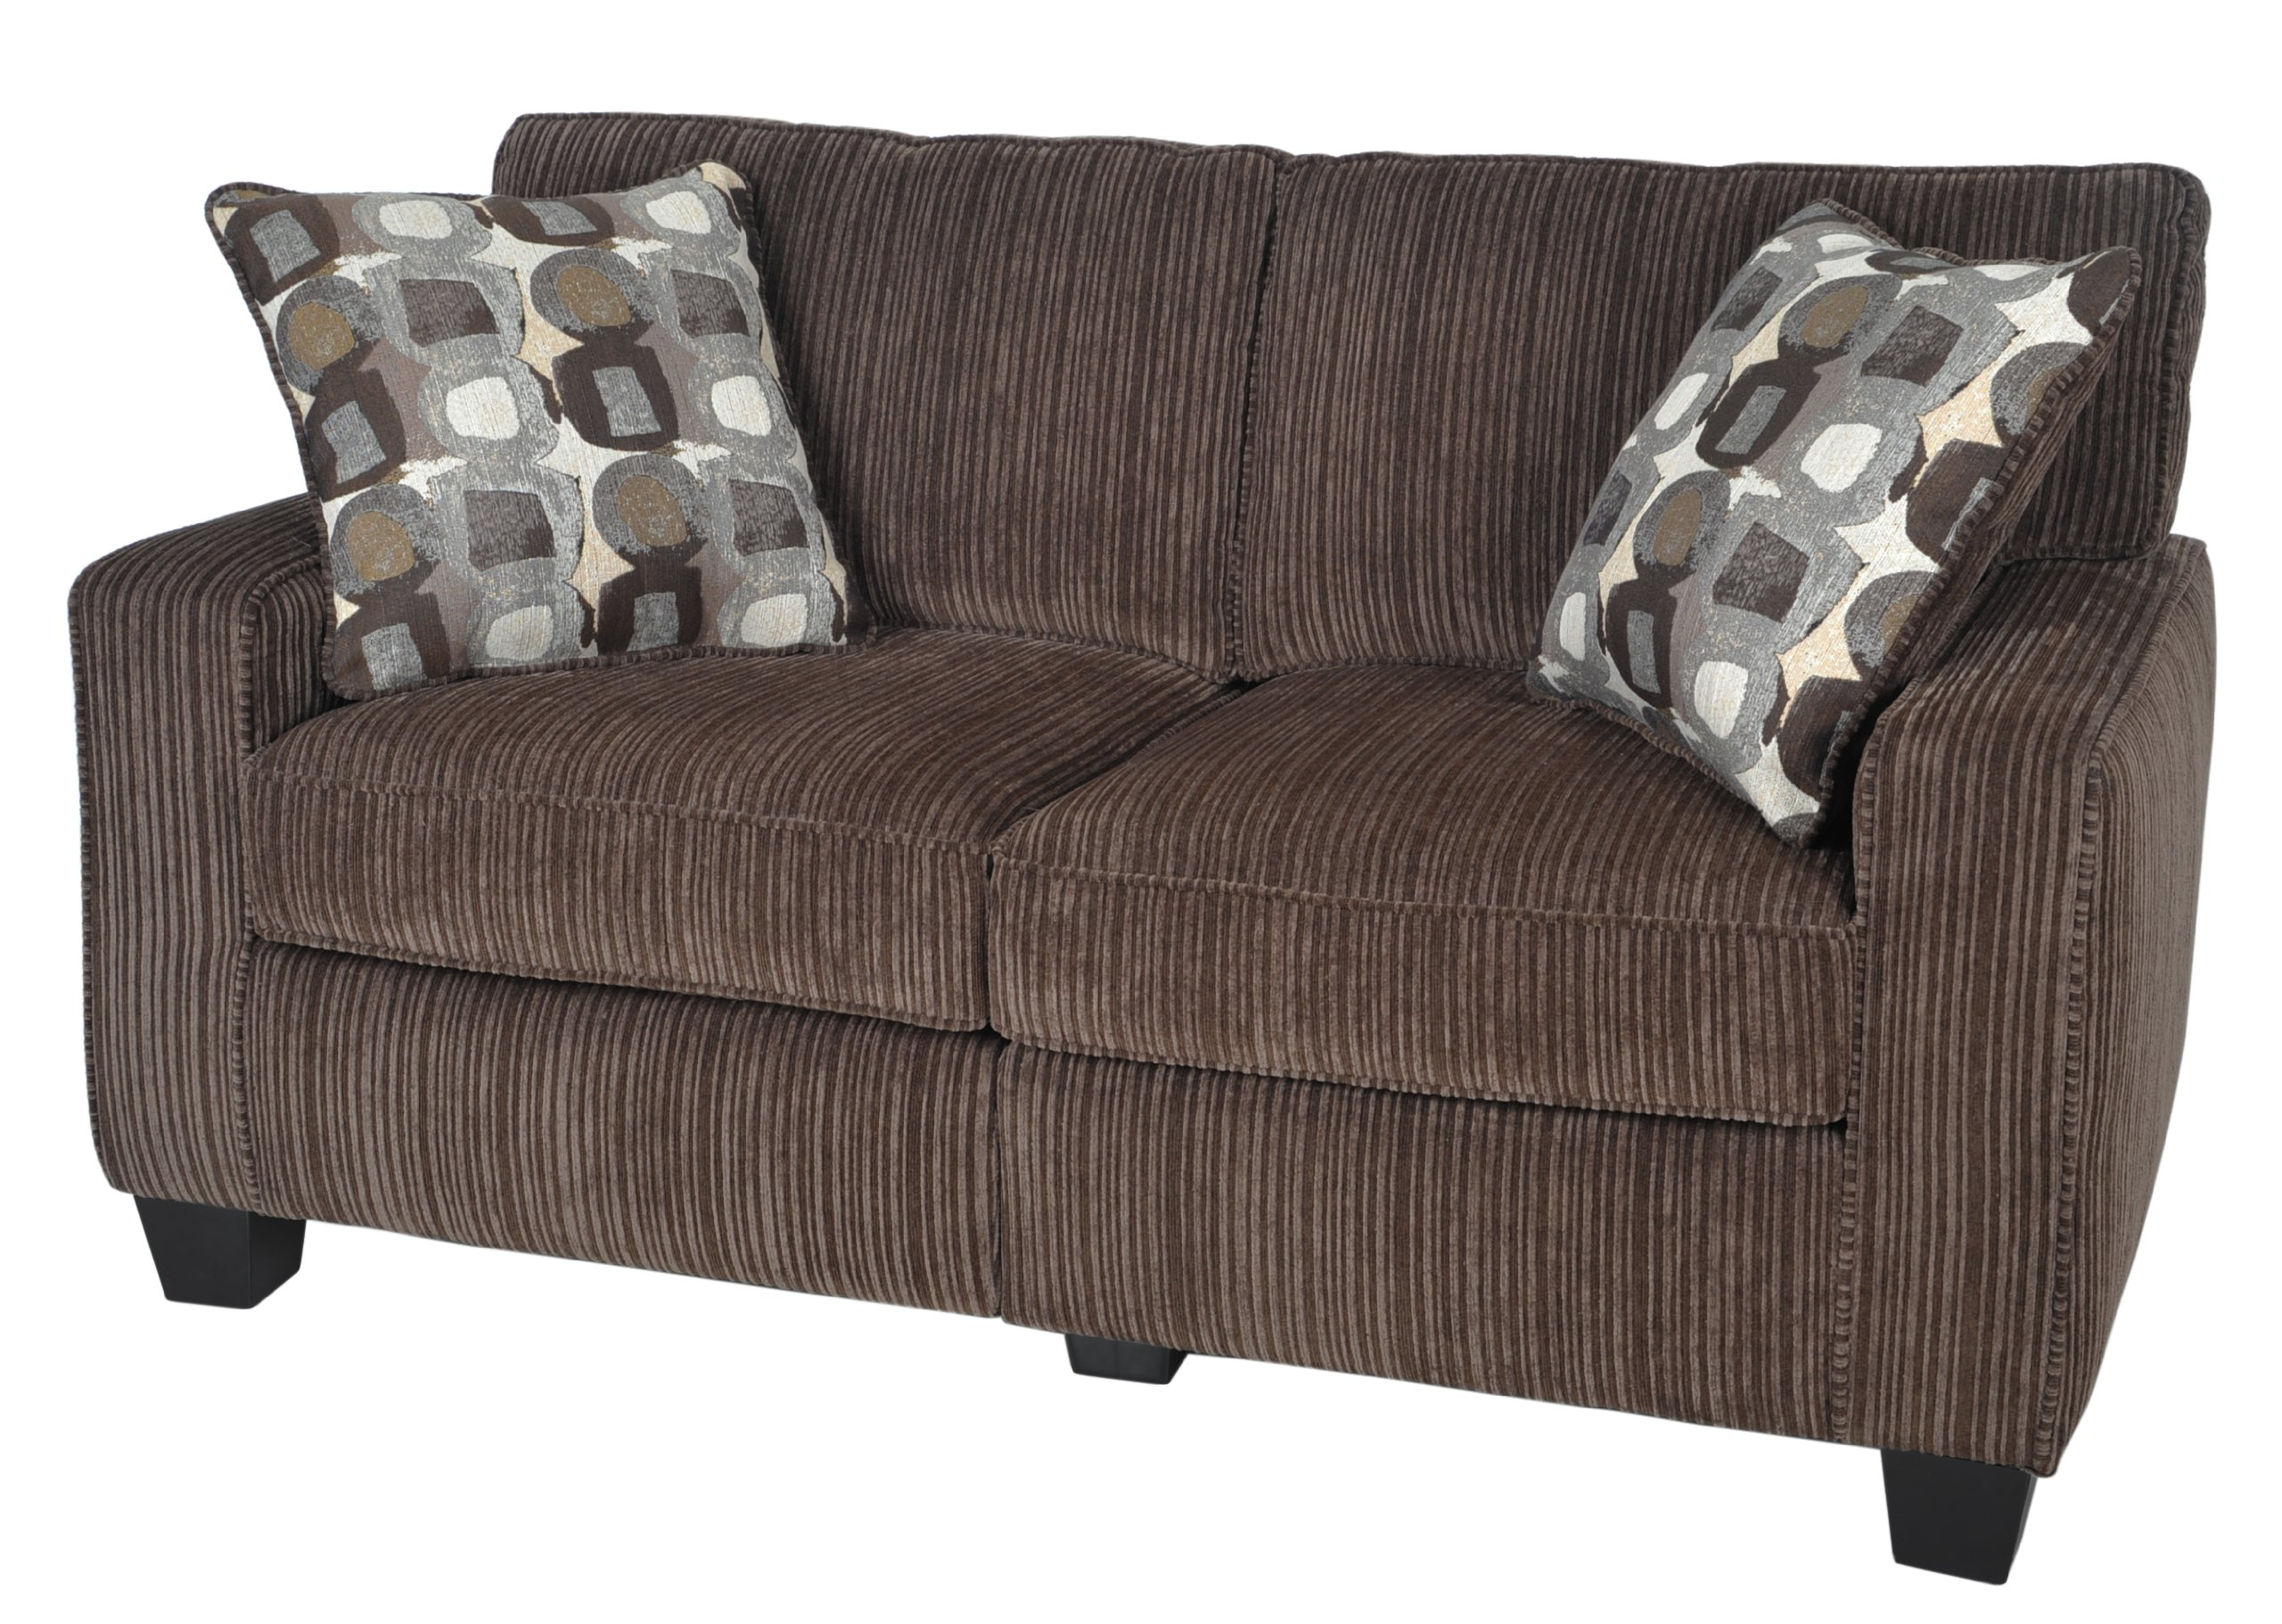 Serta RTA Palisades Collection 61'' Loveseat in Riverfront Brown by Serta (Image #7)